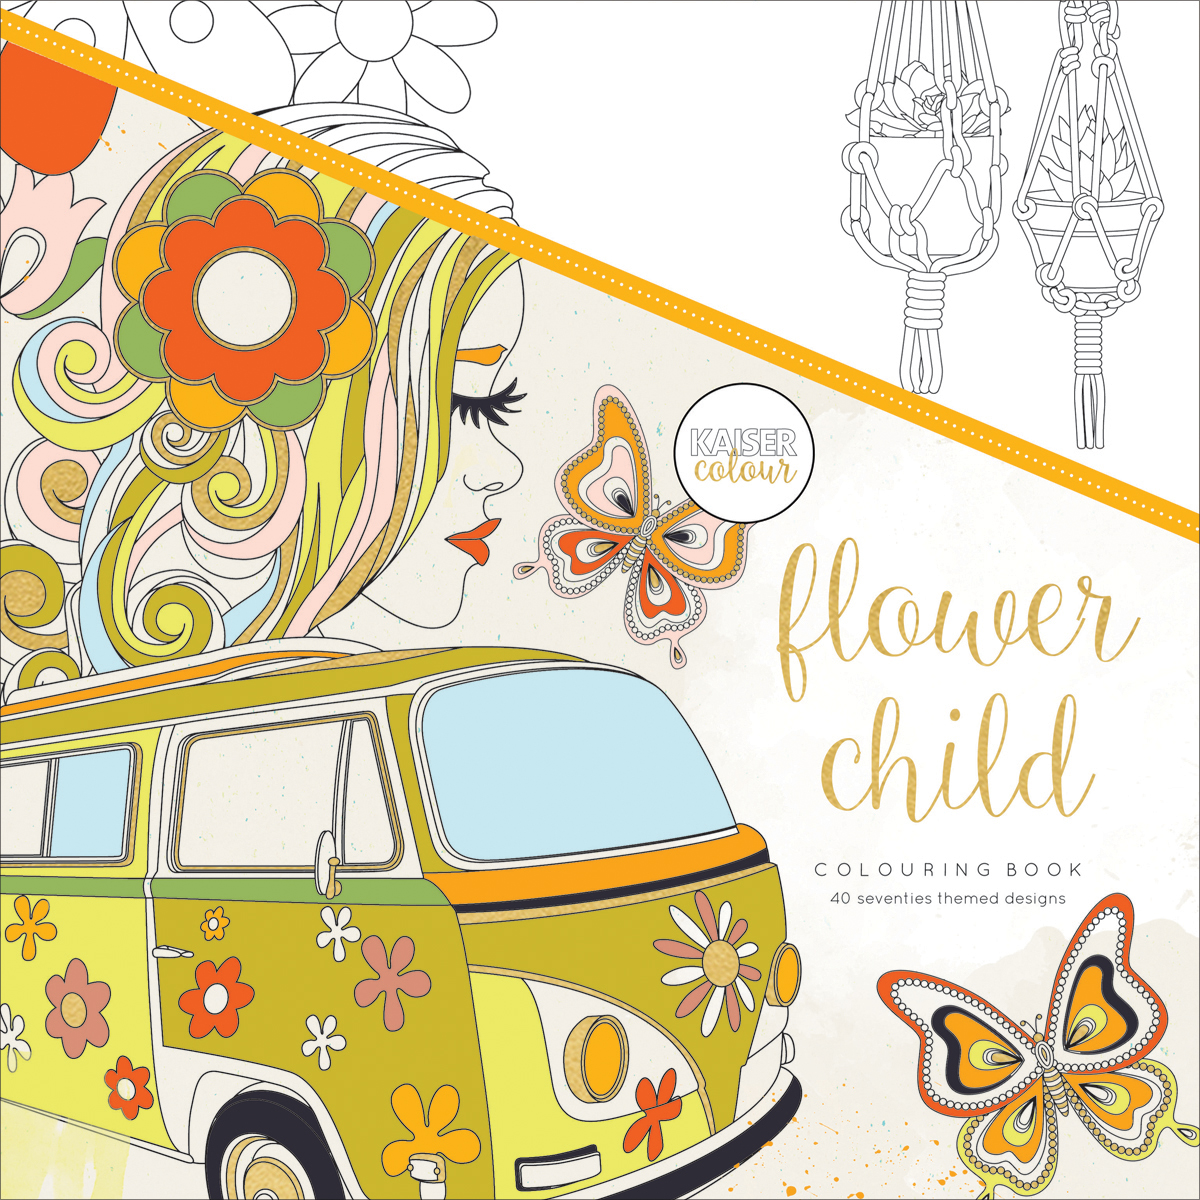 KaiserColour Perfect Bound Coloring Book 9.75X9.75-Flower Child